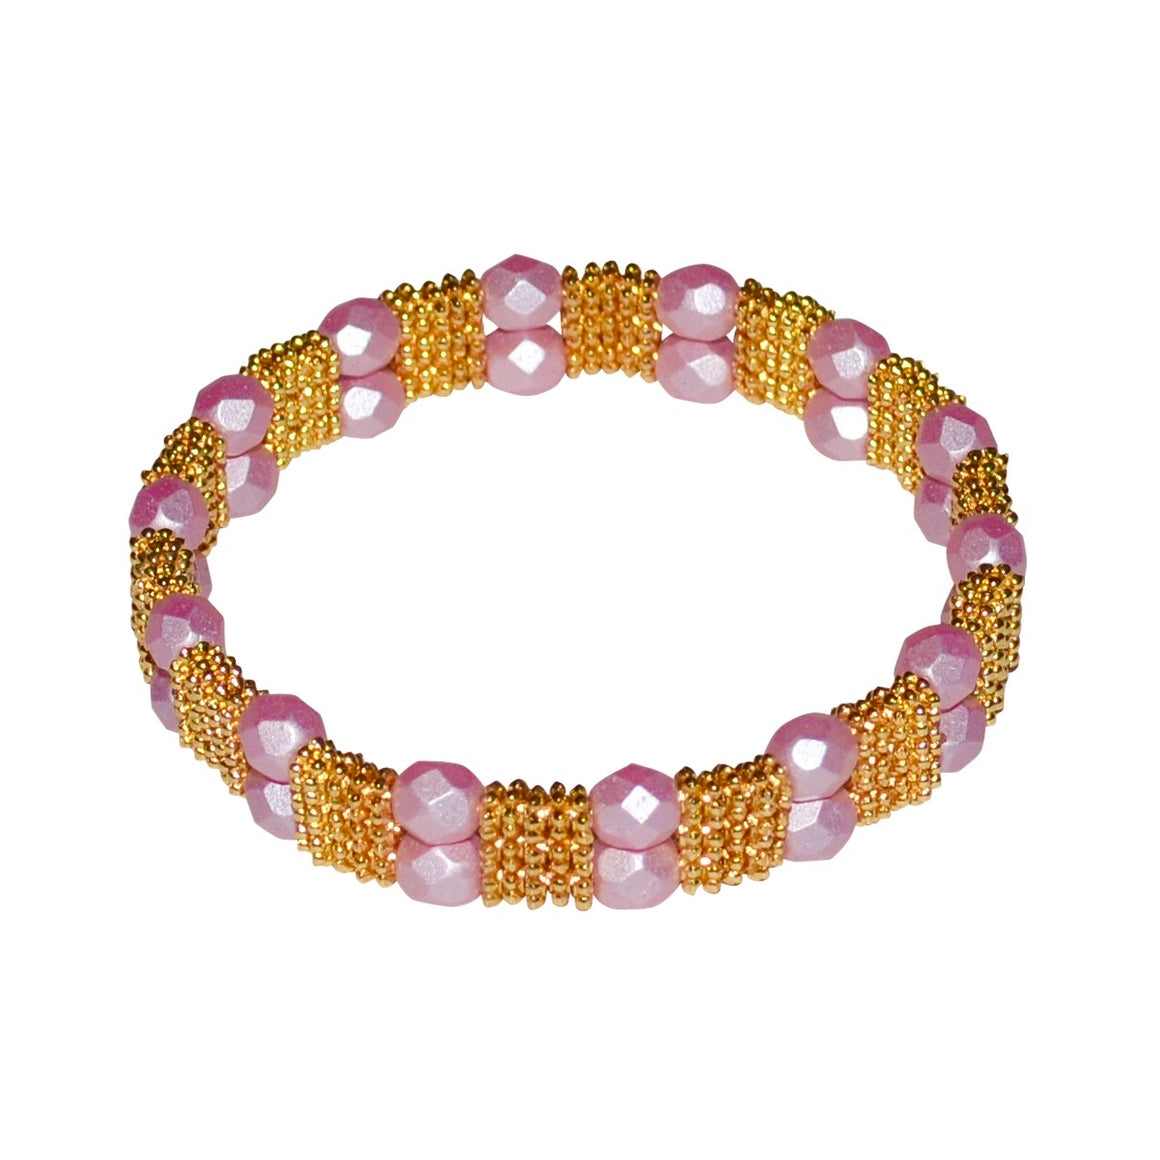 FIONA TEXTURED BRACELET IN GOLD AND PINK